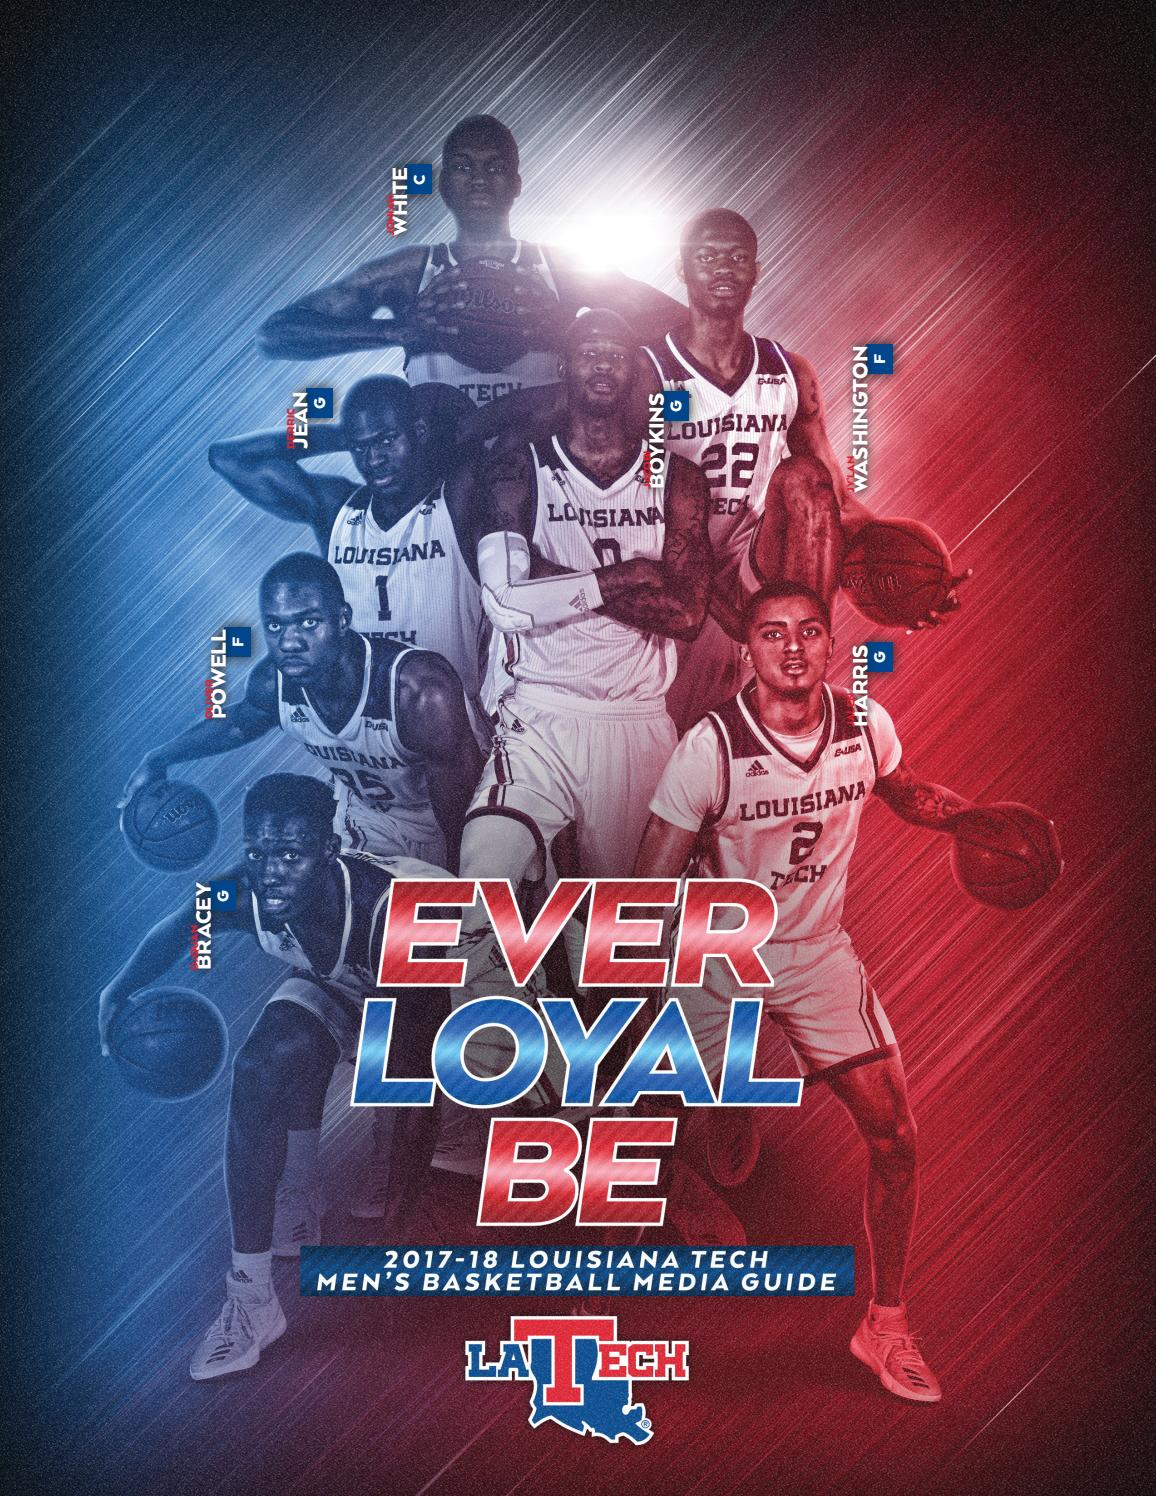 2017-18 Louisiana Tech Men's Basketball Media Guide by Louisiana Tech  Athletics - issuu